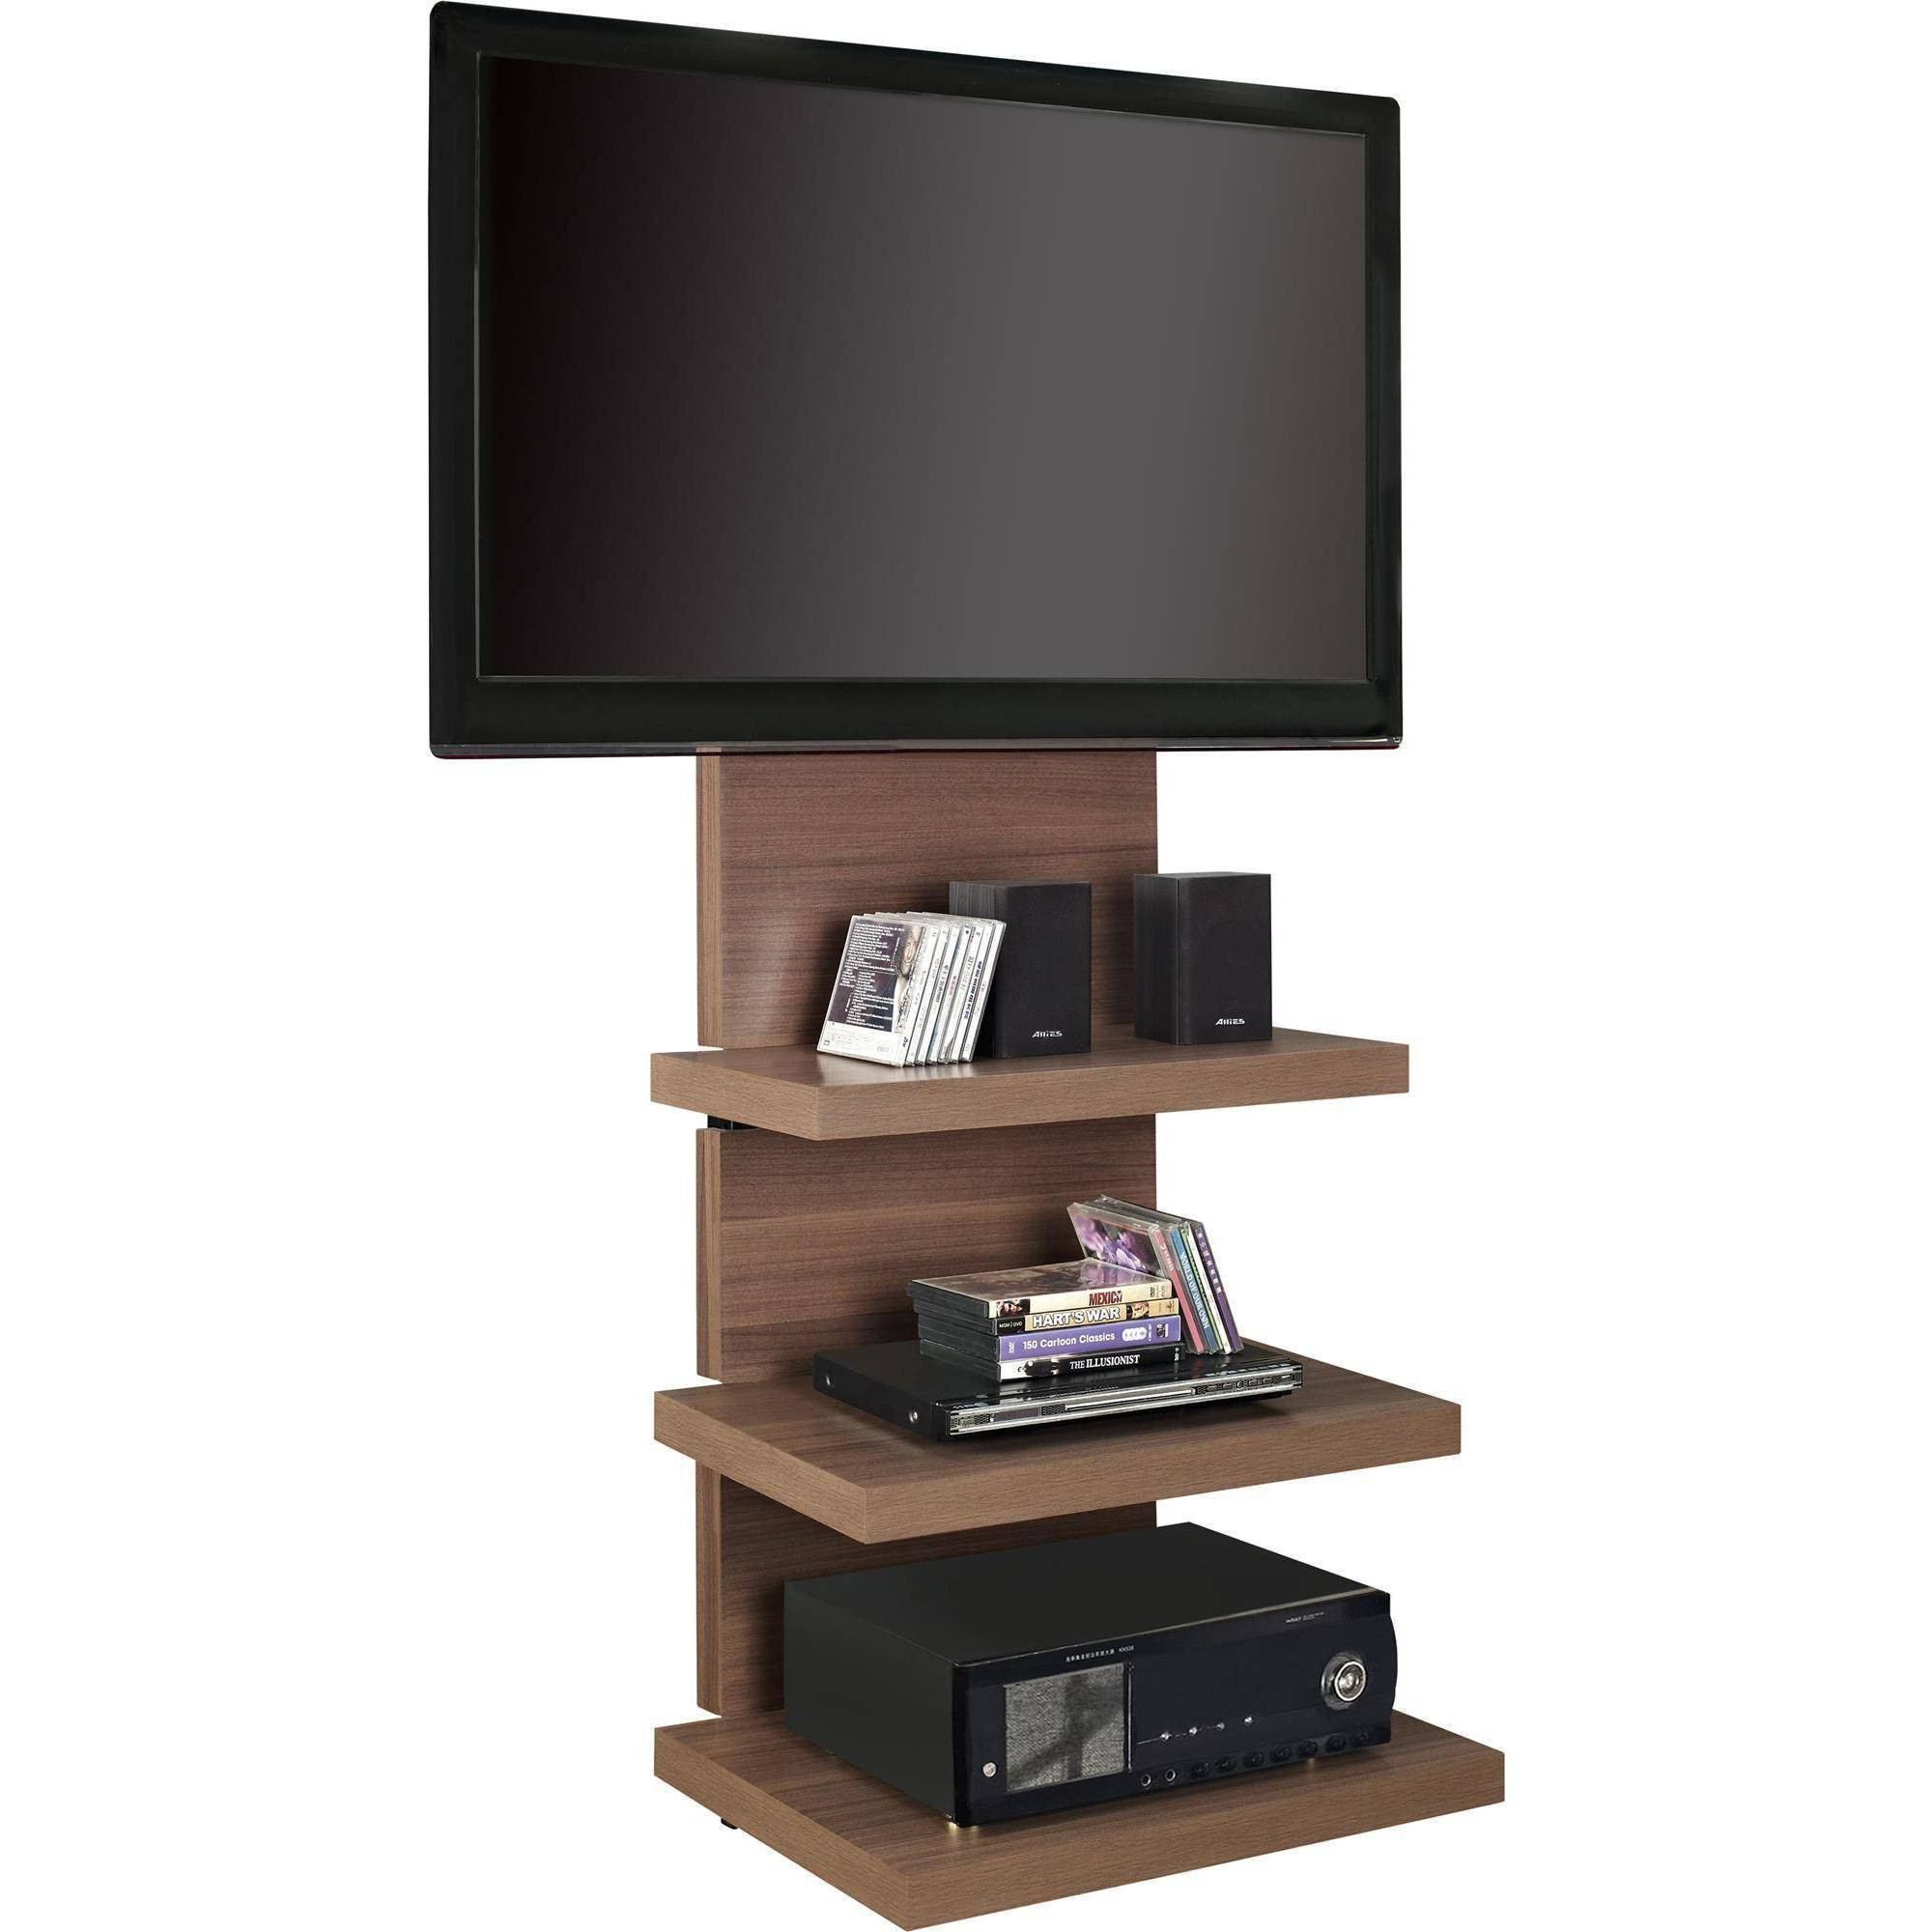 Best ideas about Wall Mount Tv Stand . Save or Pin Altra Wall Mount TV Stand with 3 Shelves for TVs up to 60 Now.